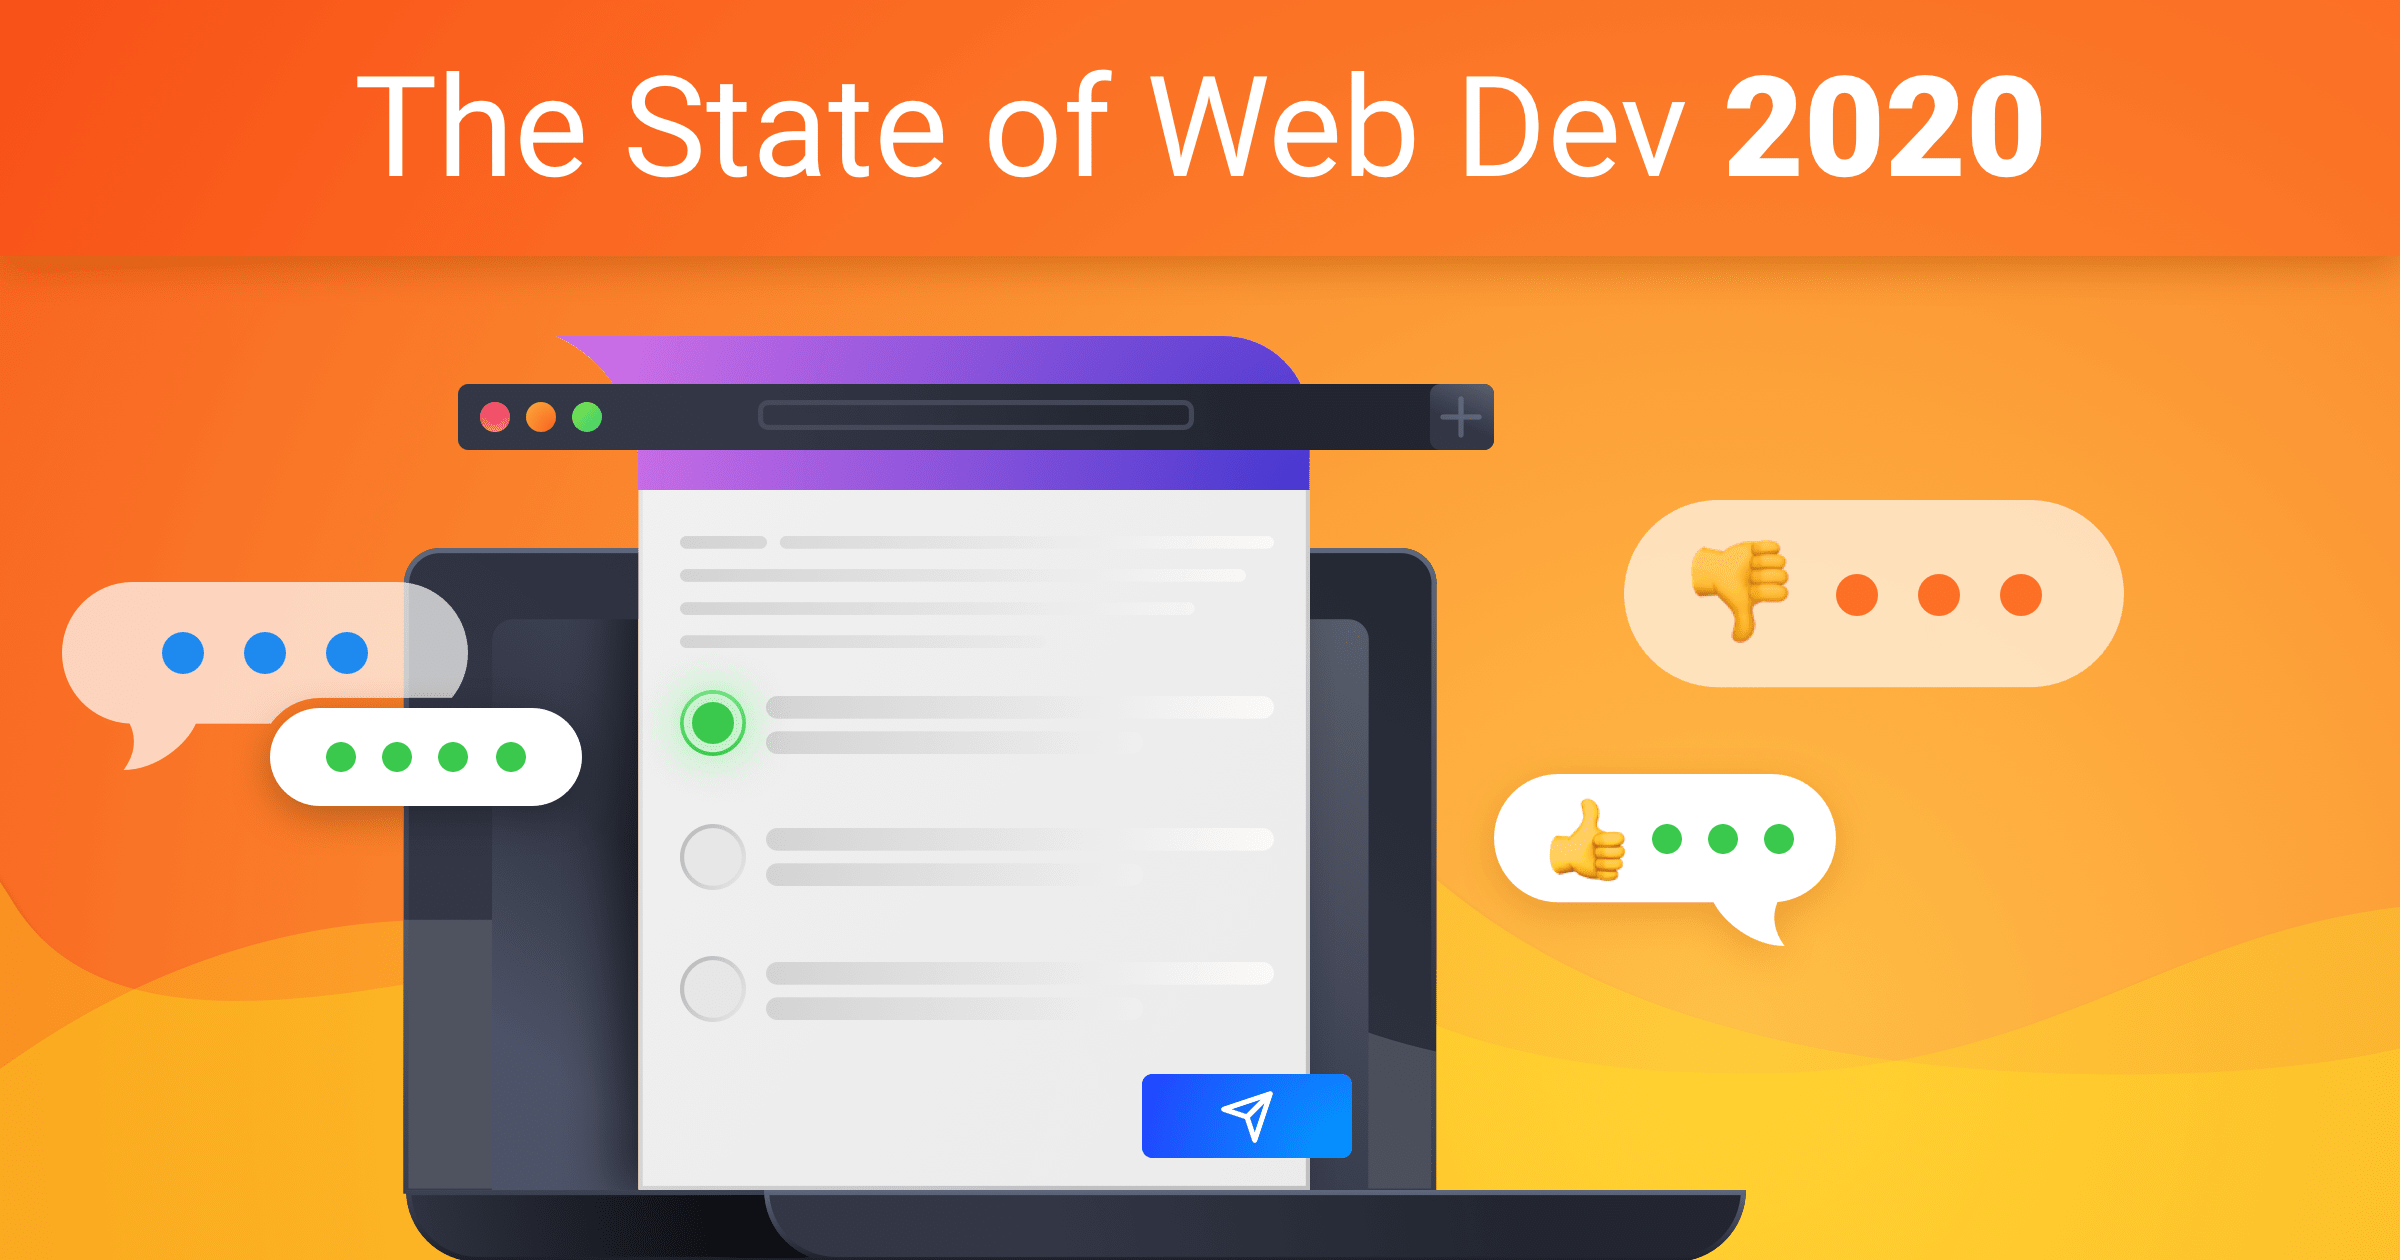 The State of Web Dev 2020